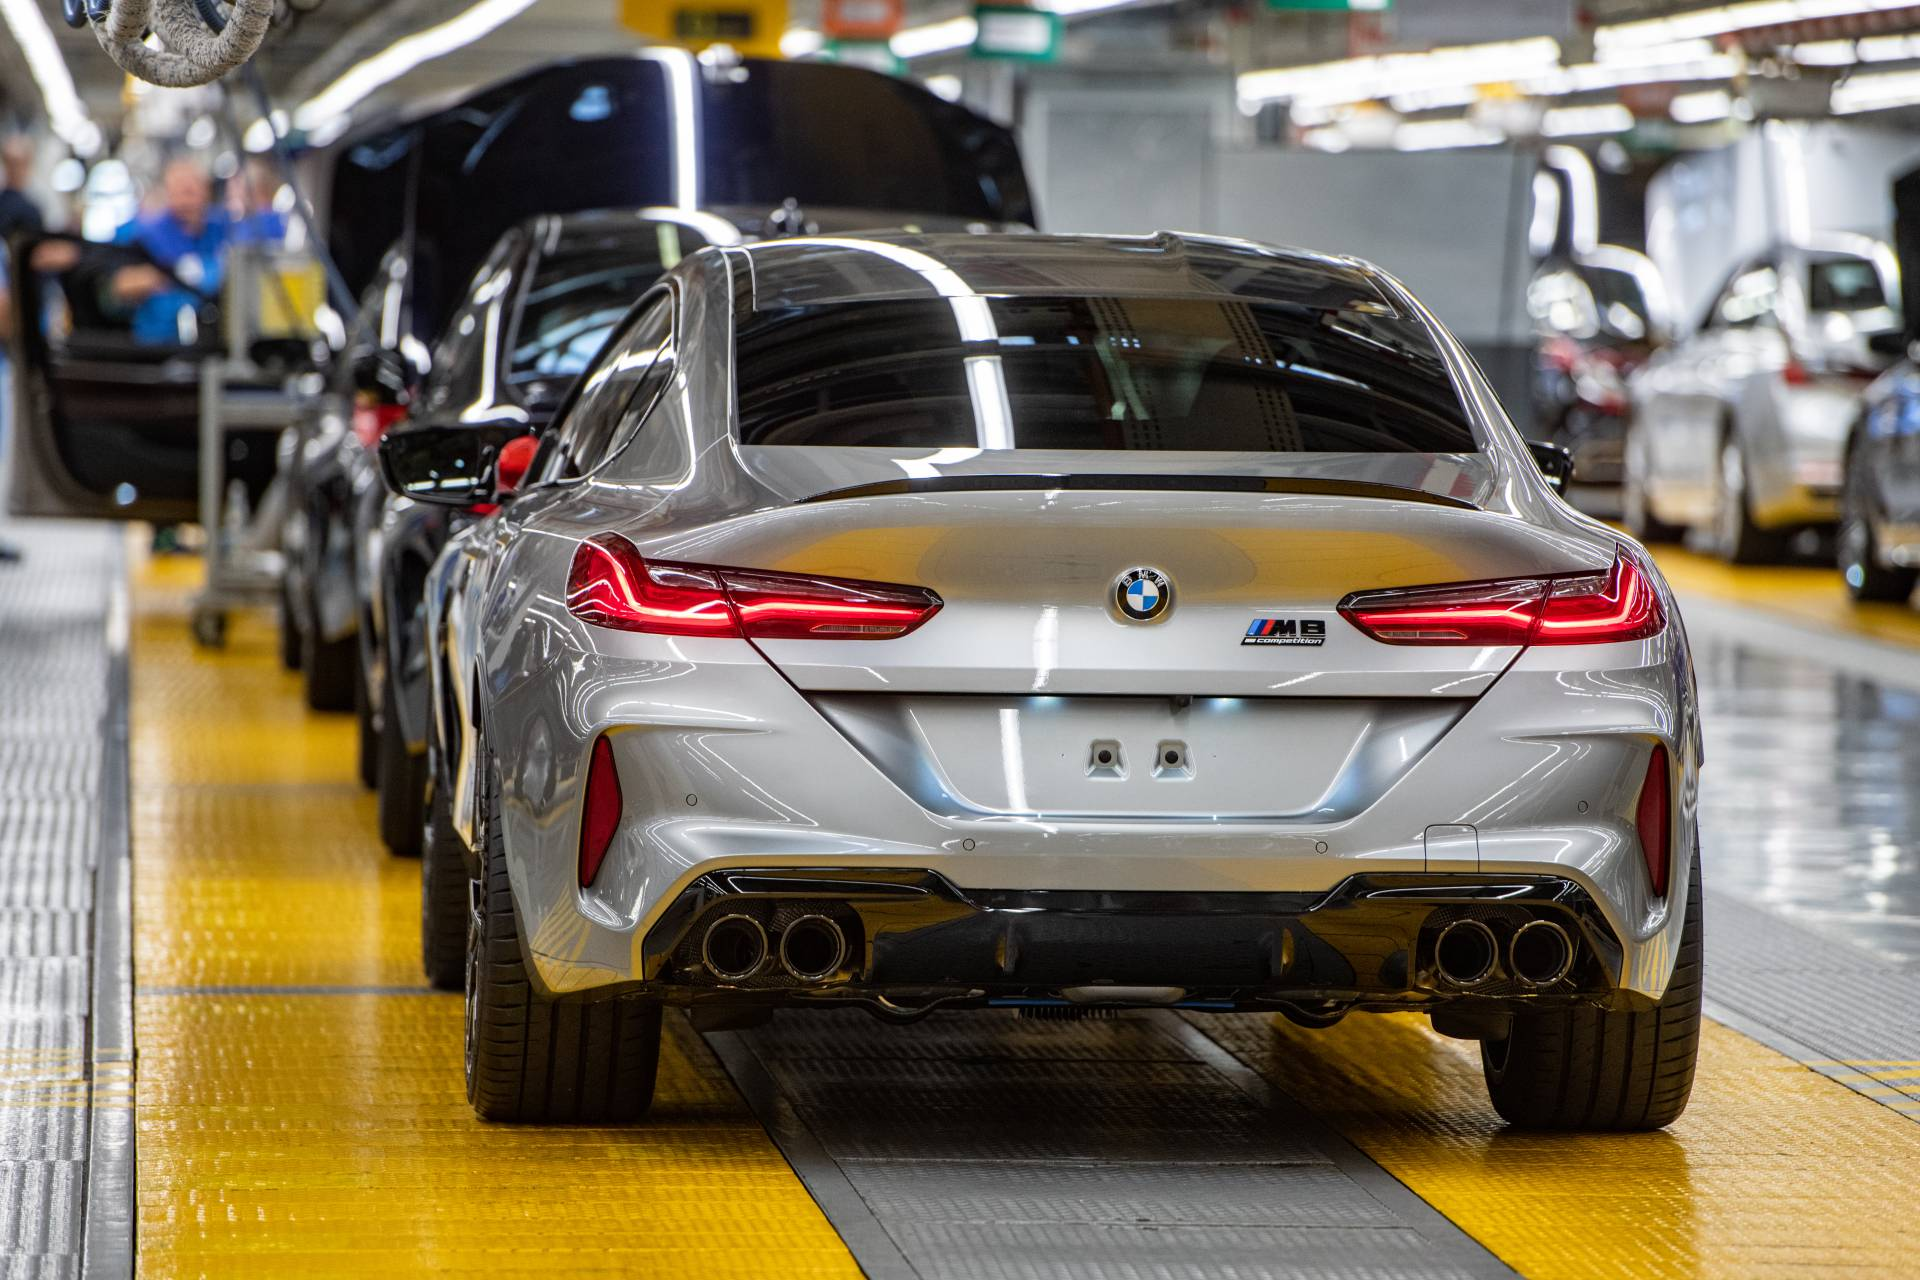 BMW-M8-Gran-Coupe-production-plant-factory-4